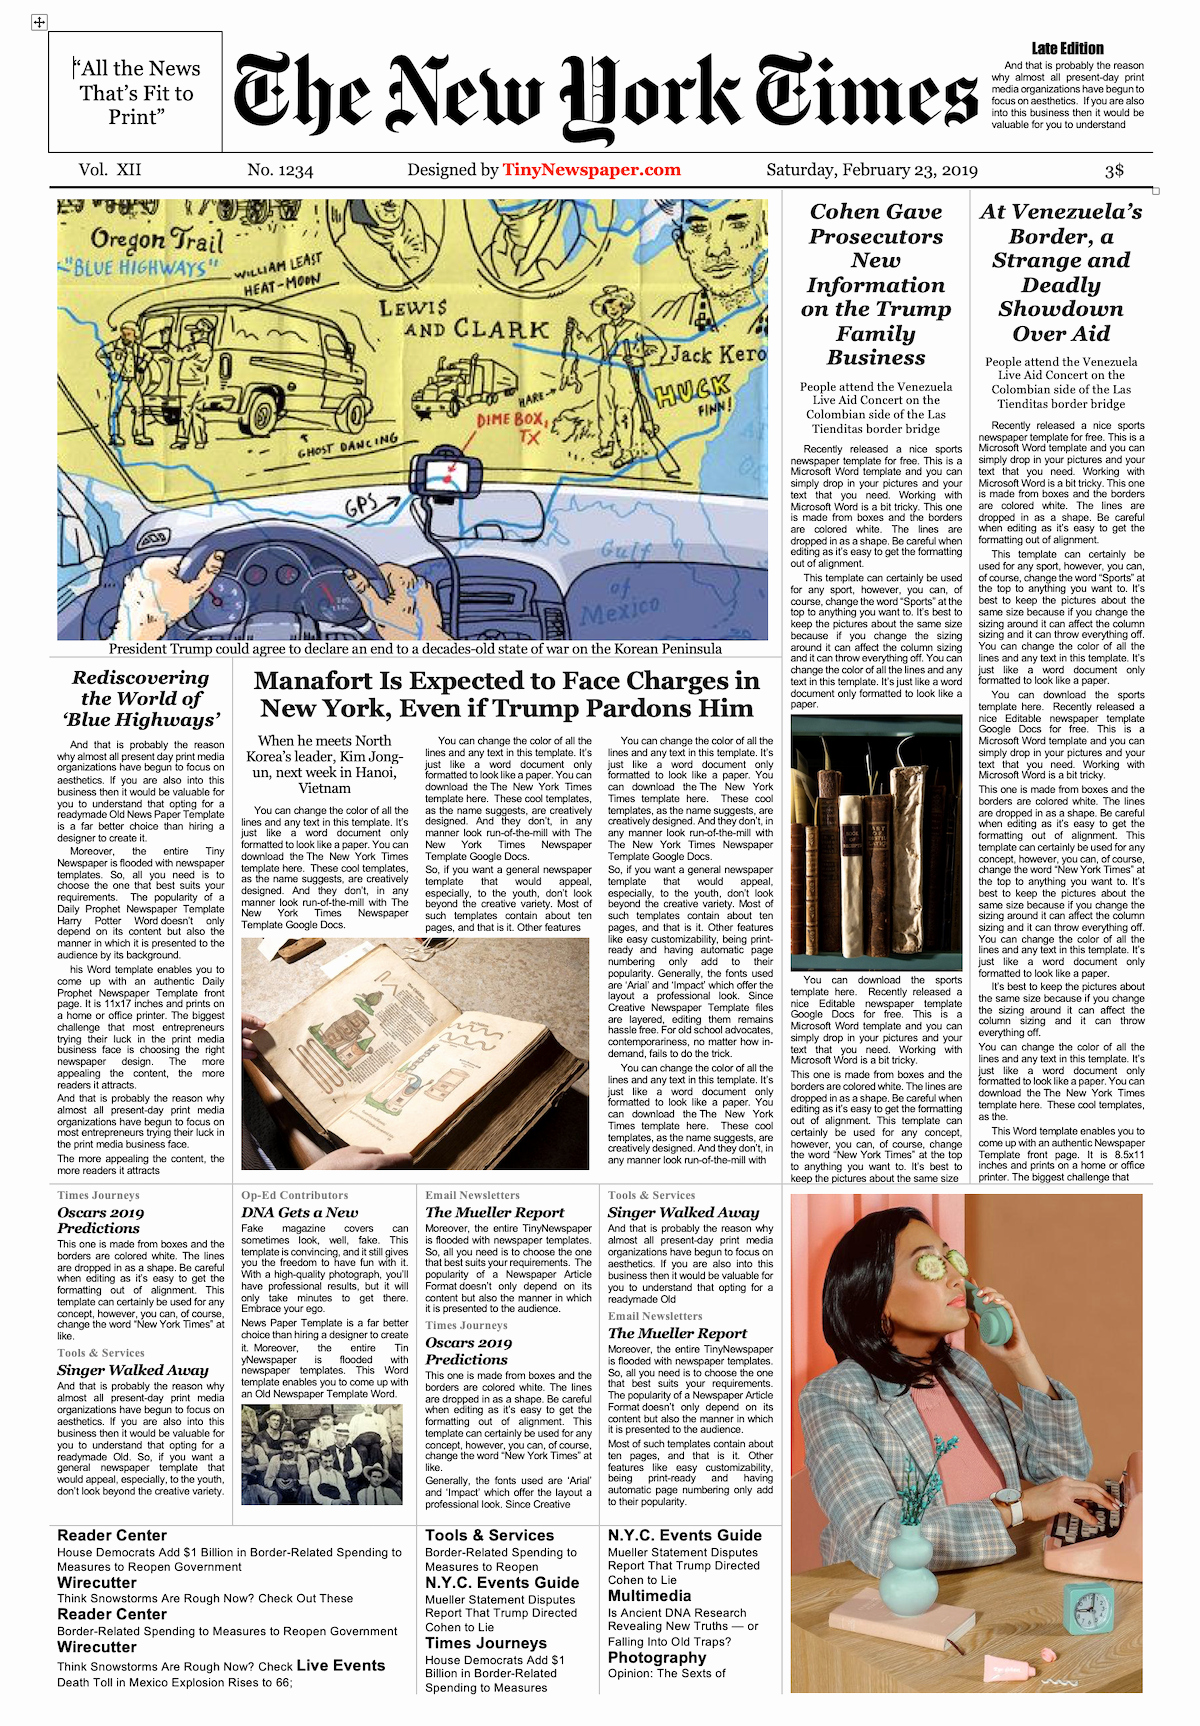 New York Times Newspaper Template Awesome Newspaper Template Google Docs